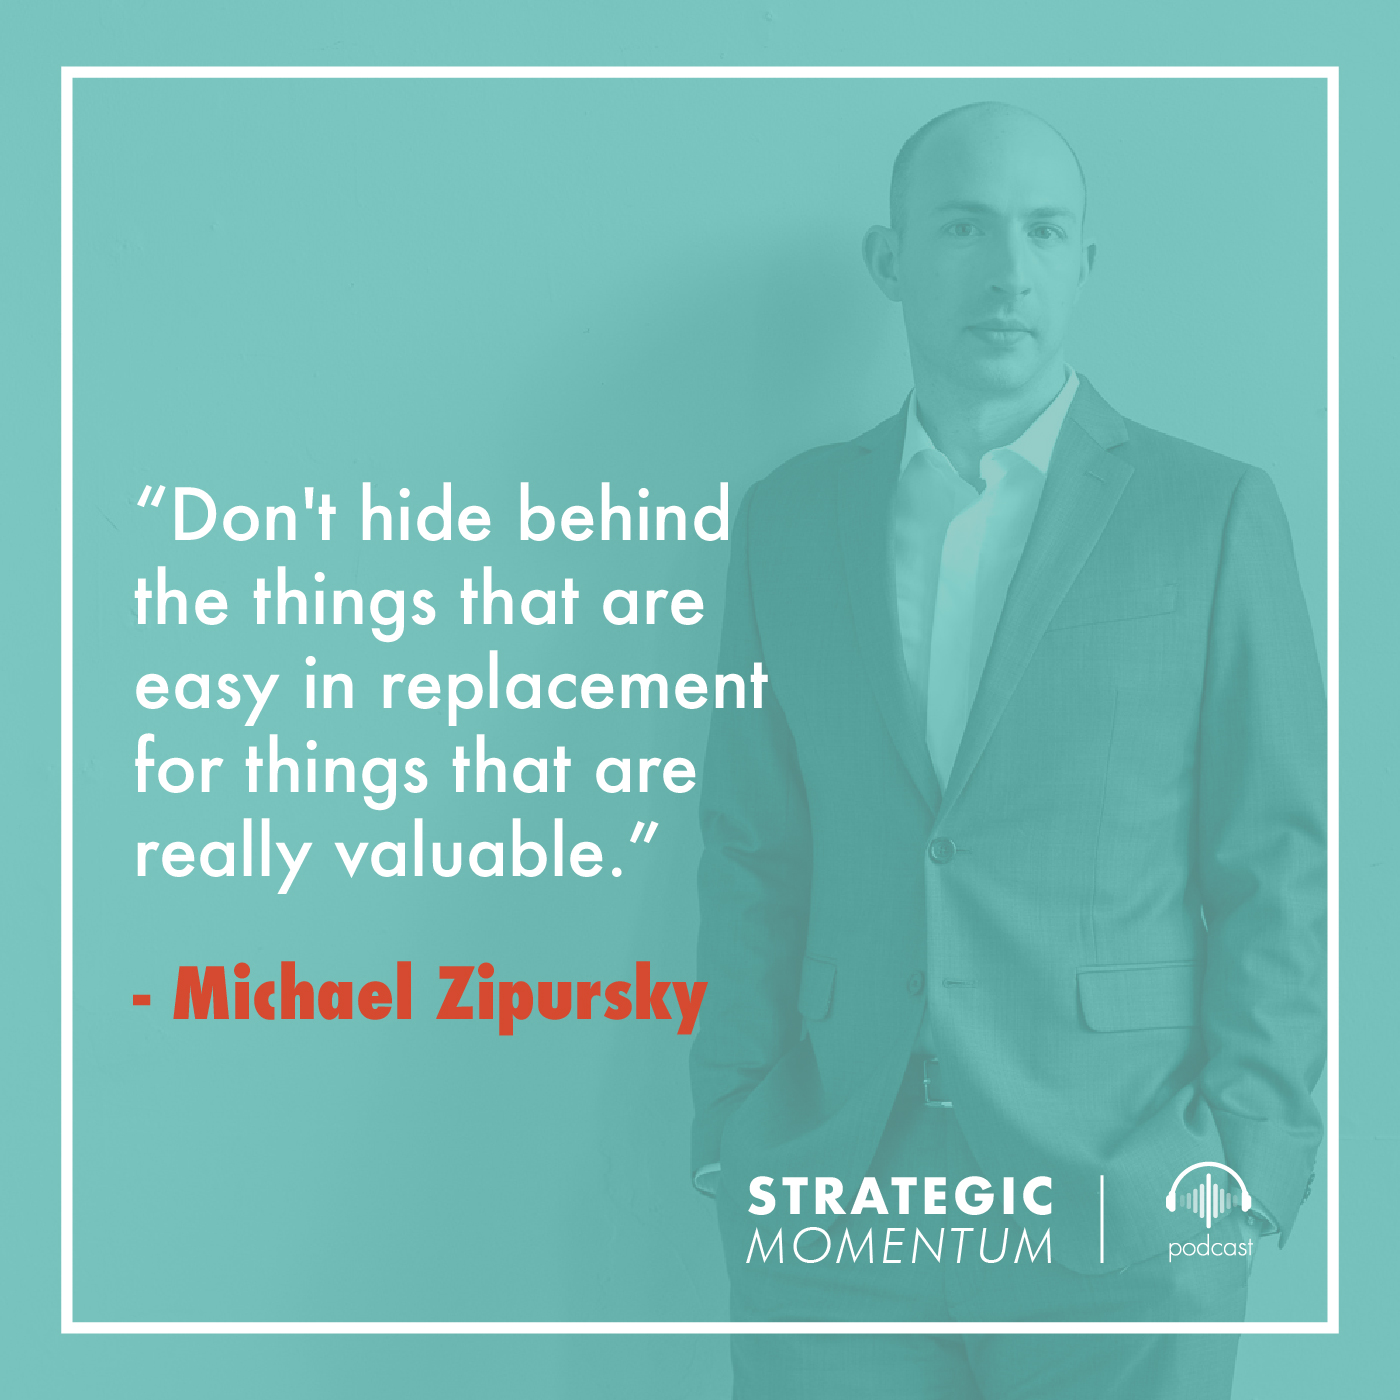 Michael Zipursky Quote | Strategic Momentum Podcast